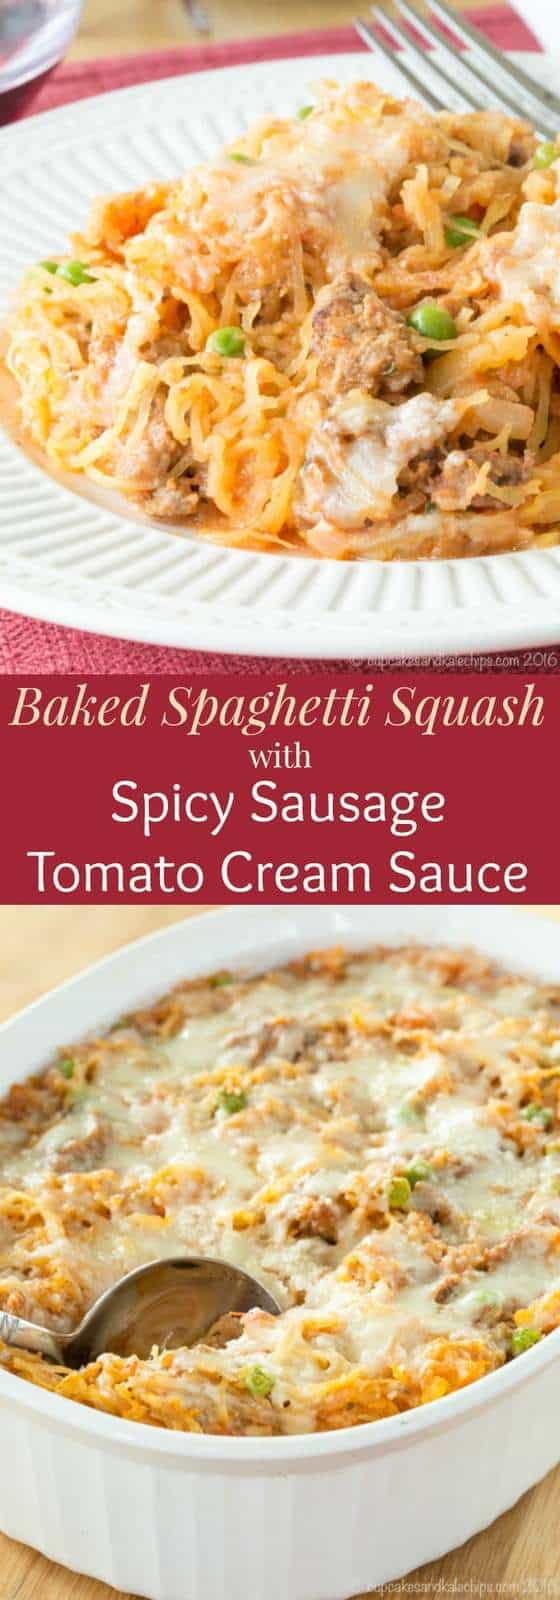 Baked Spaghetti Squash with Spicy Sausage Tomato Cream Sauce - a healthy, gluten free, low carb comfort food that's just as creamy, cheesy, and delicious as any pasta casserole recipe. #spaghettisquash #glutenfree #lowcarb